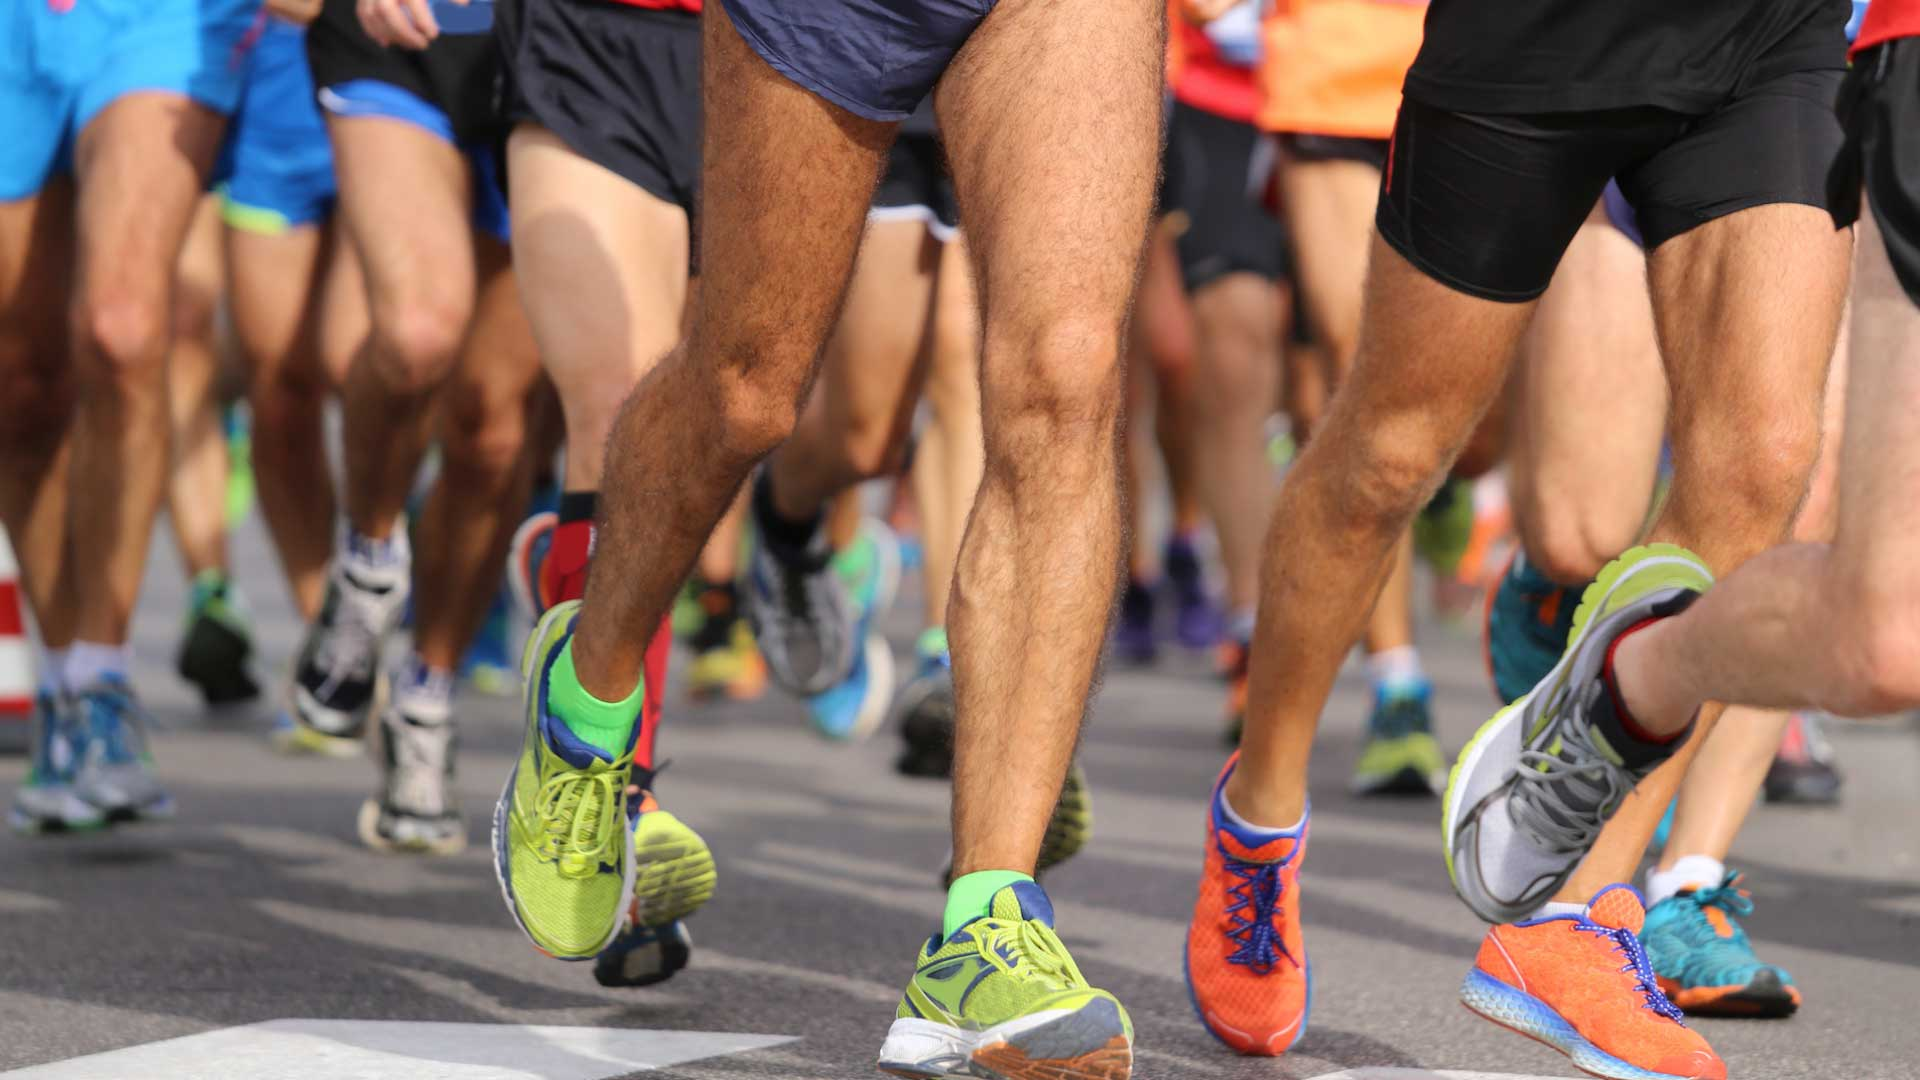 Cannabis and Runners: A Different Kind of High